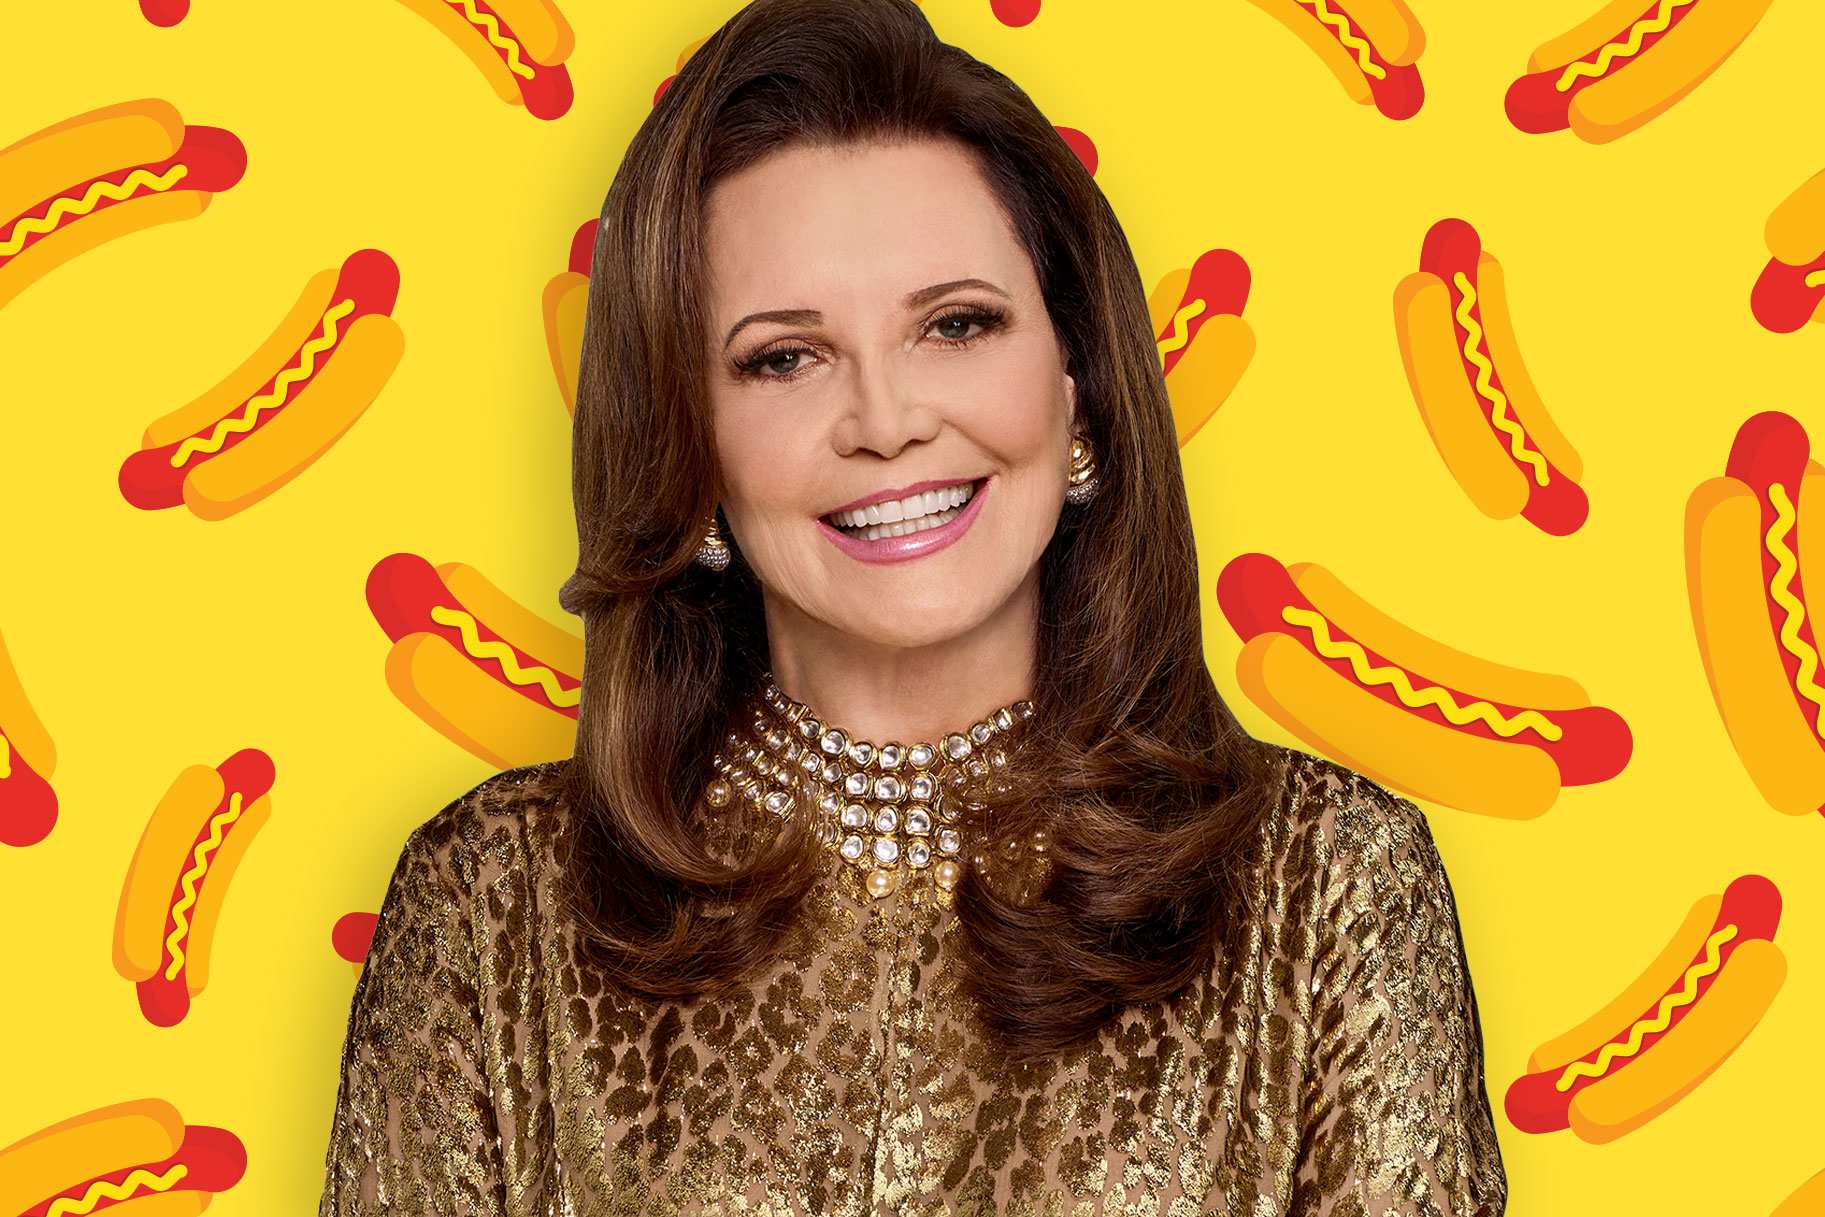 patricia-altschul-hot-dog.jpg